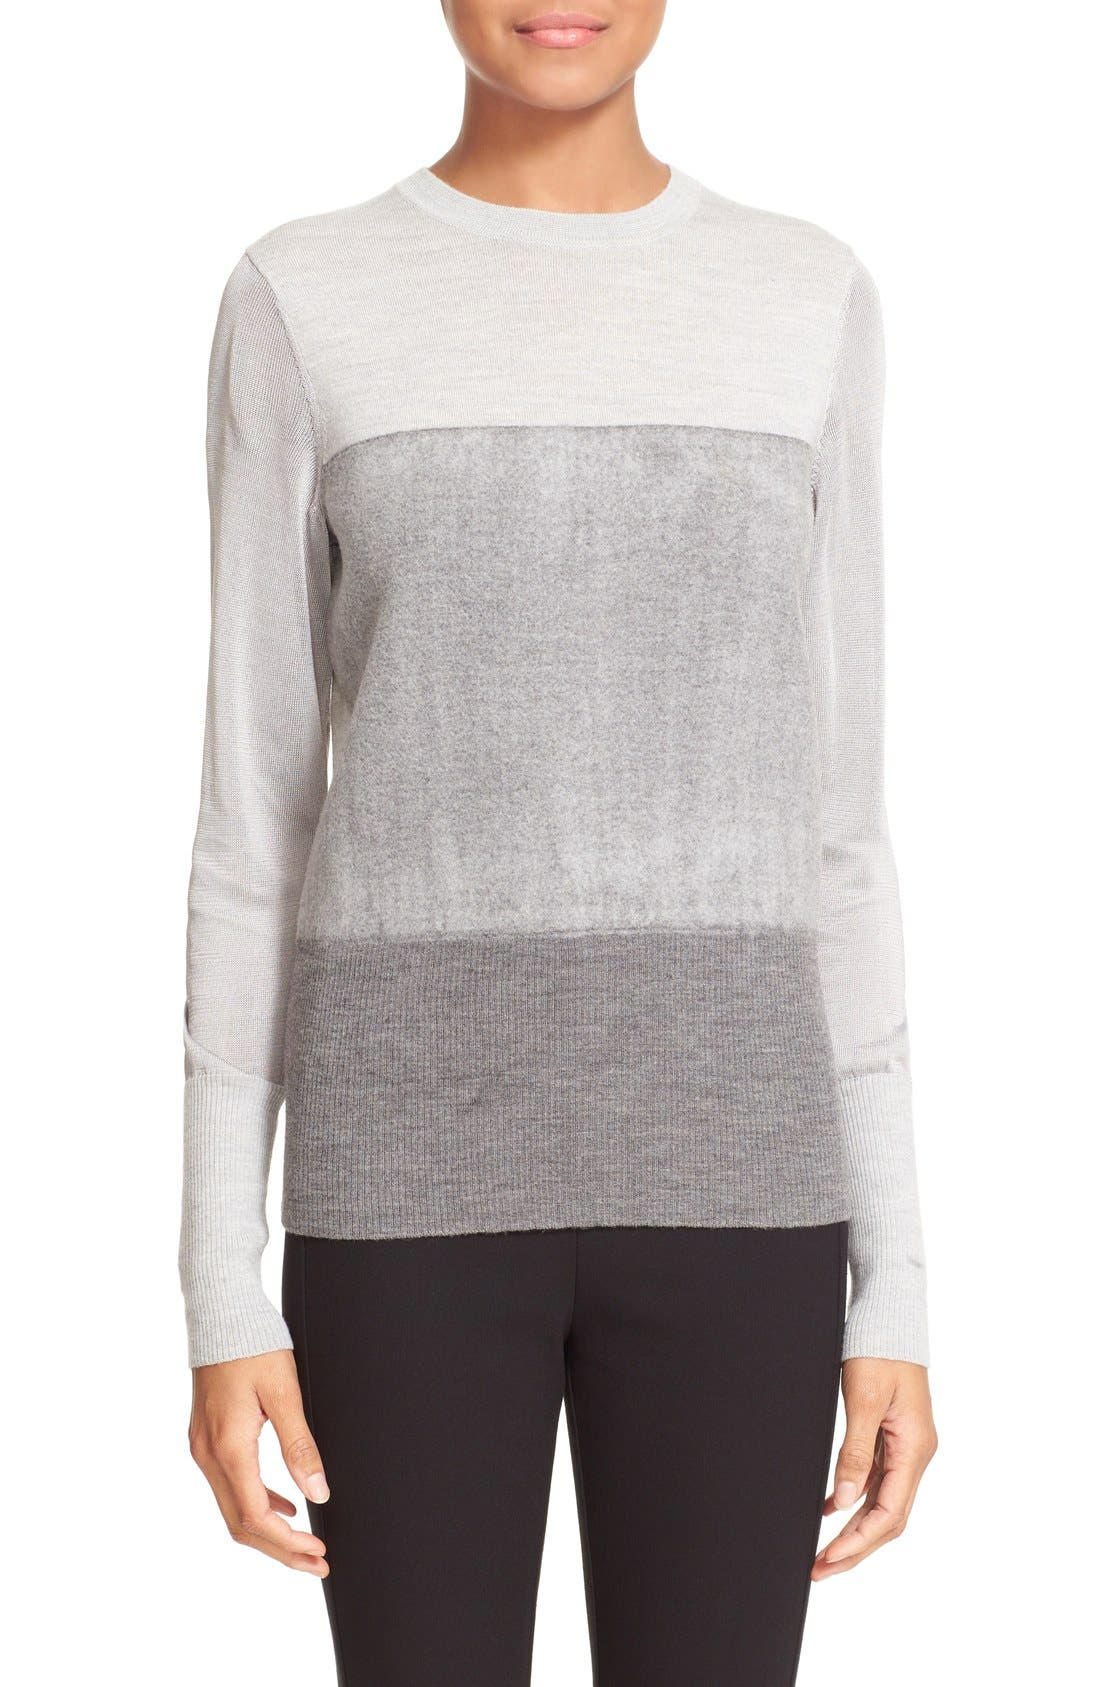 RAG & BONE,                             'Marissa' Merino Wool Crewneck Sweater,                             Main thumbnail 1, color,                             020